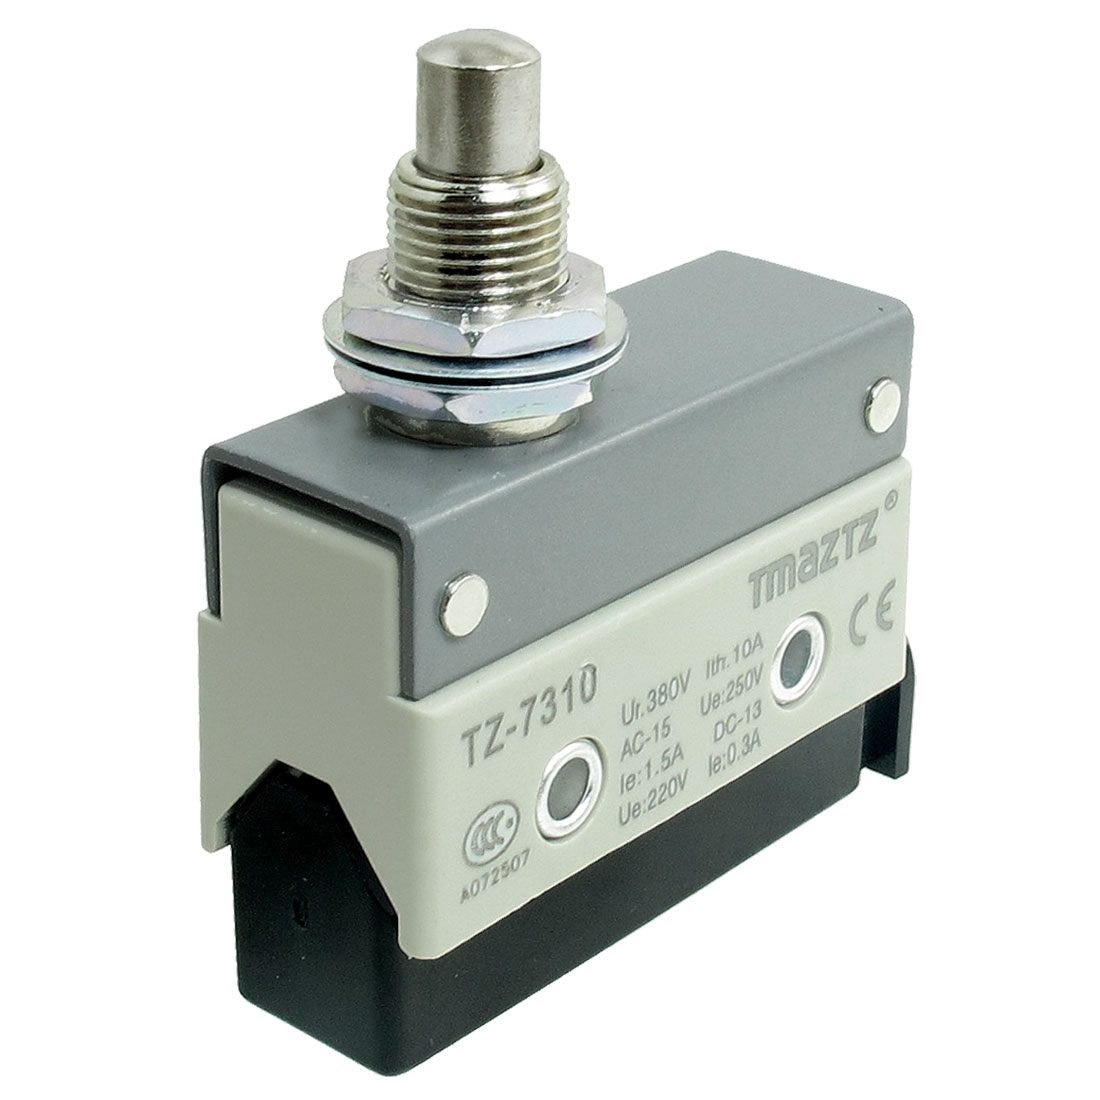 TZ-7310 Panel Mount Plunger Momentary Micro Switch Ui 380V Ith 10A